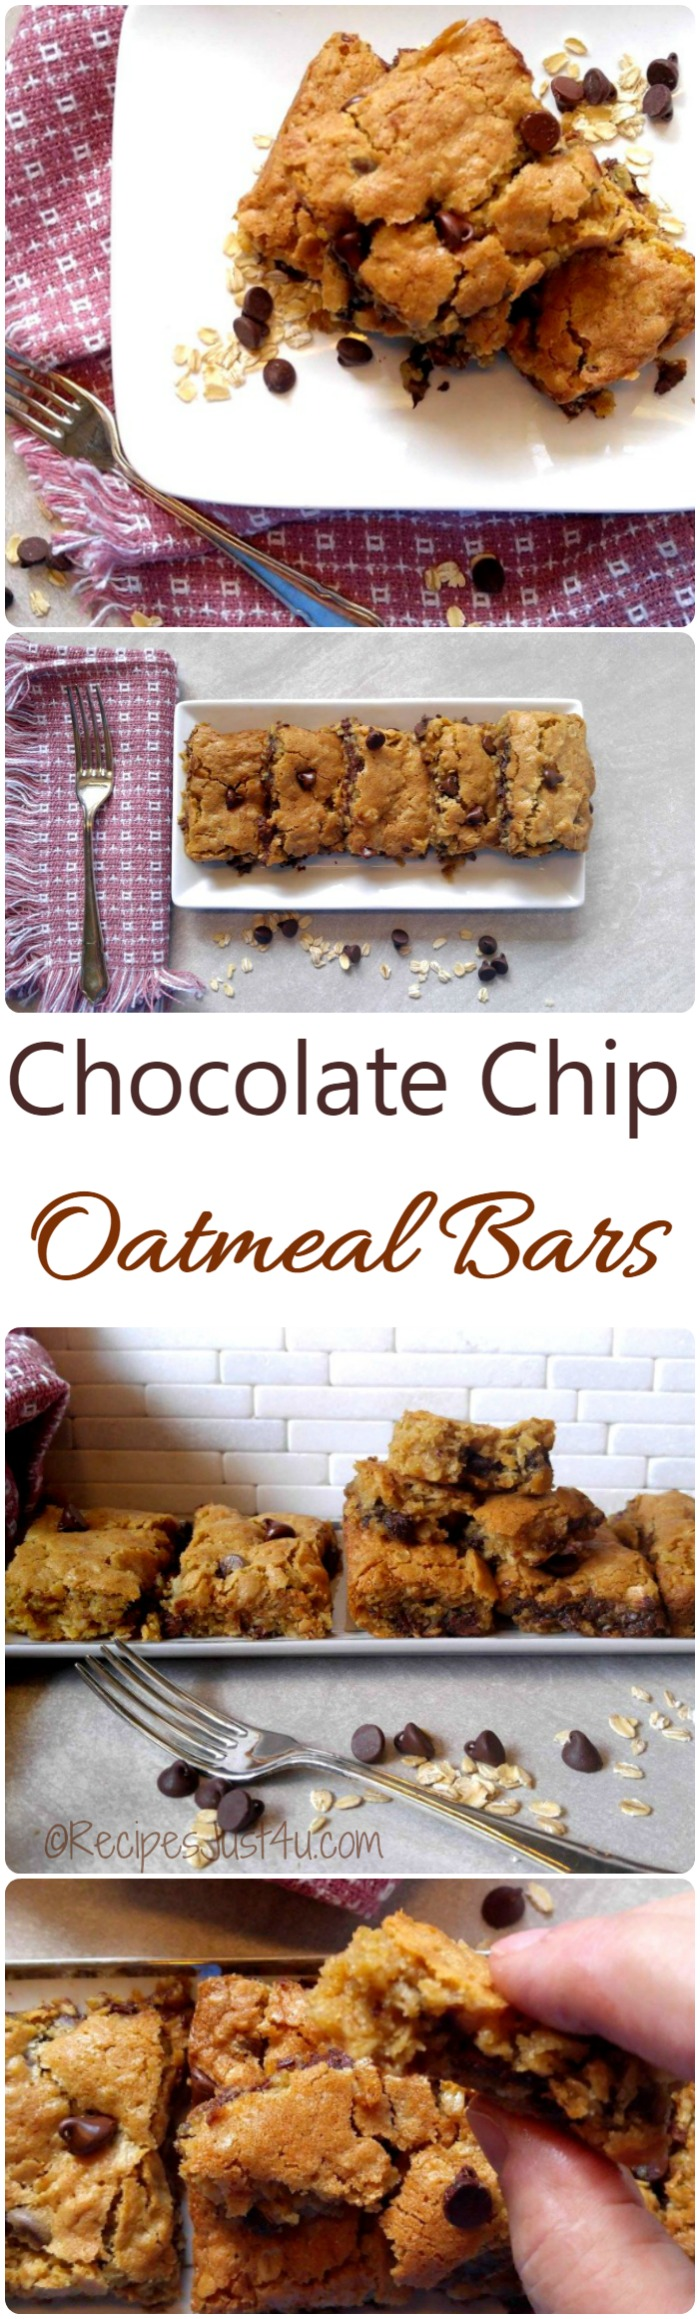 These chocolate chip oatmeal bars are hearty, gooey and full of the flavor dark chocolate and oats. They are super easy to make too.